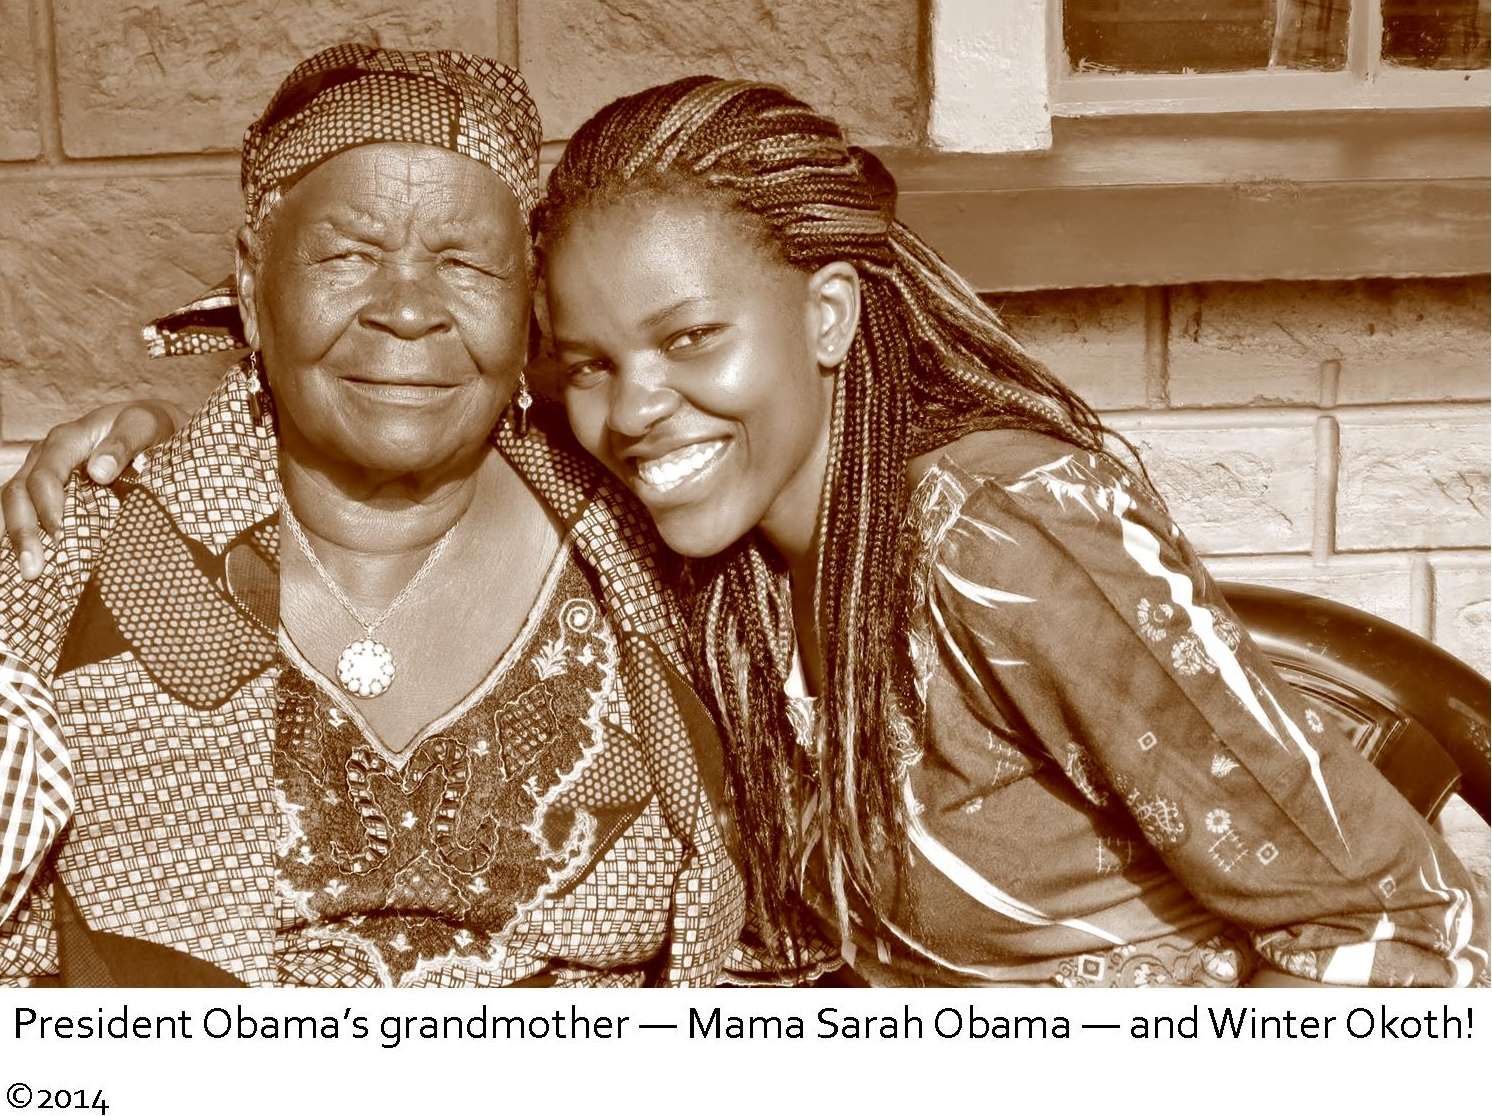 Our Founder with Mama Sarah Obama